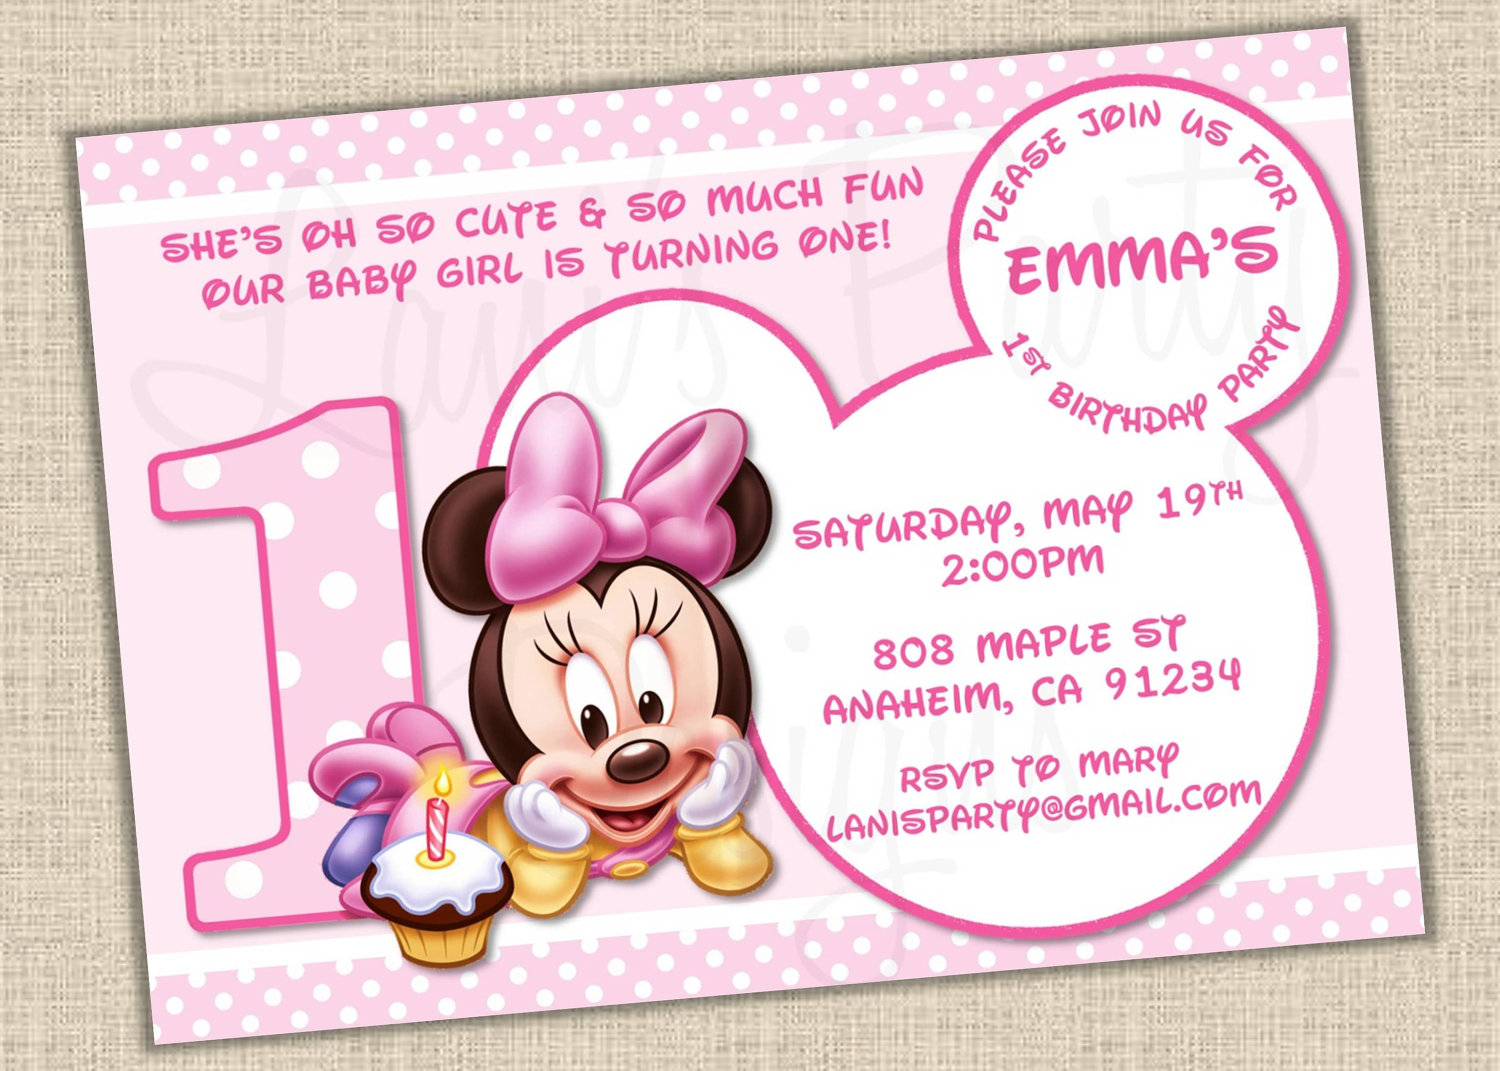 Pictures of baby minnie mouse invitations kidskunstfo create free printable minnie mouse baby shower invitations minnie mouse baby cliparts filmwisefo